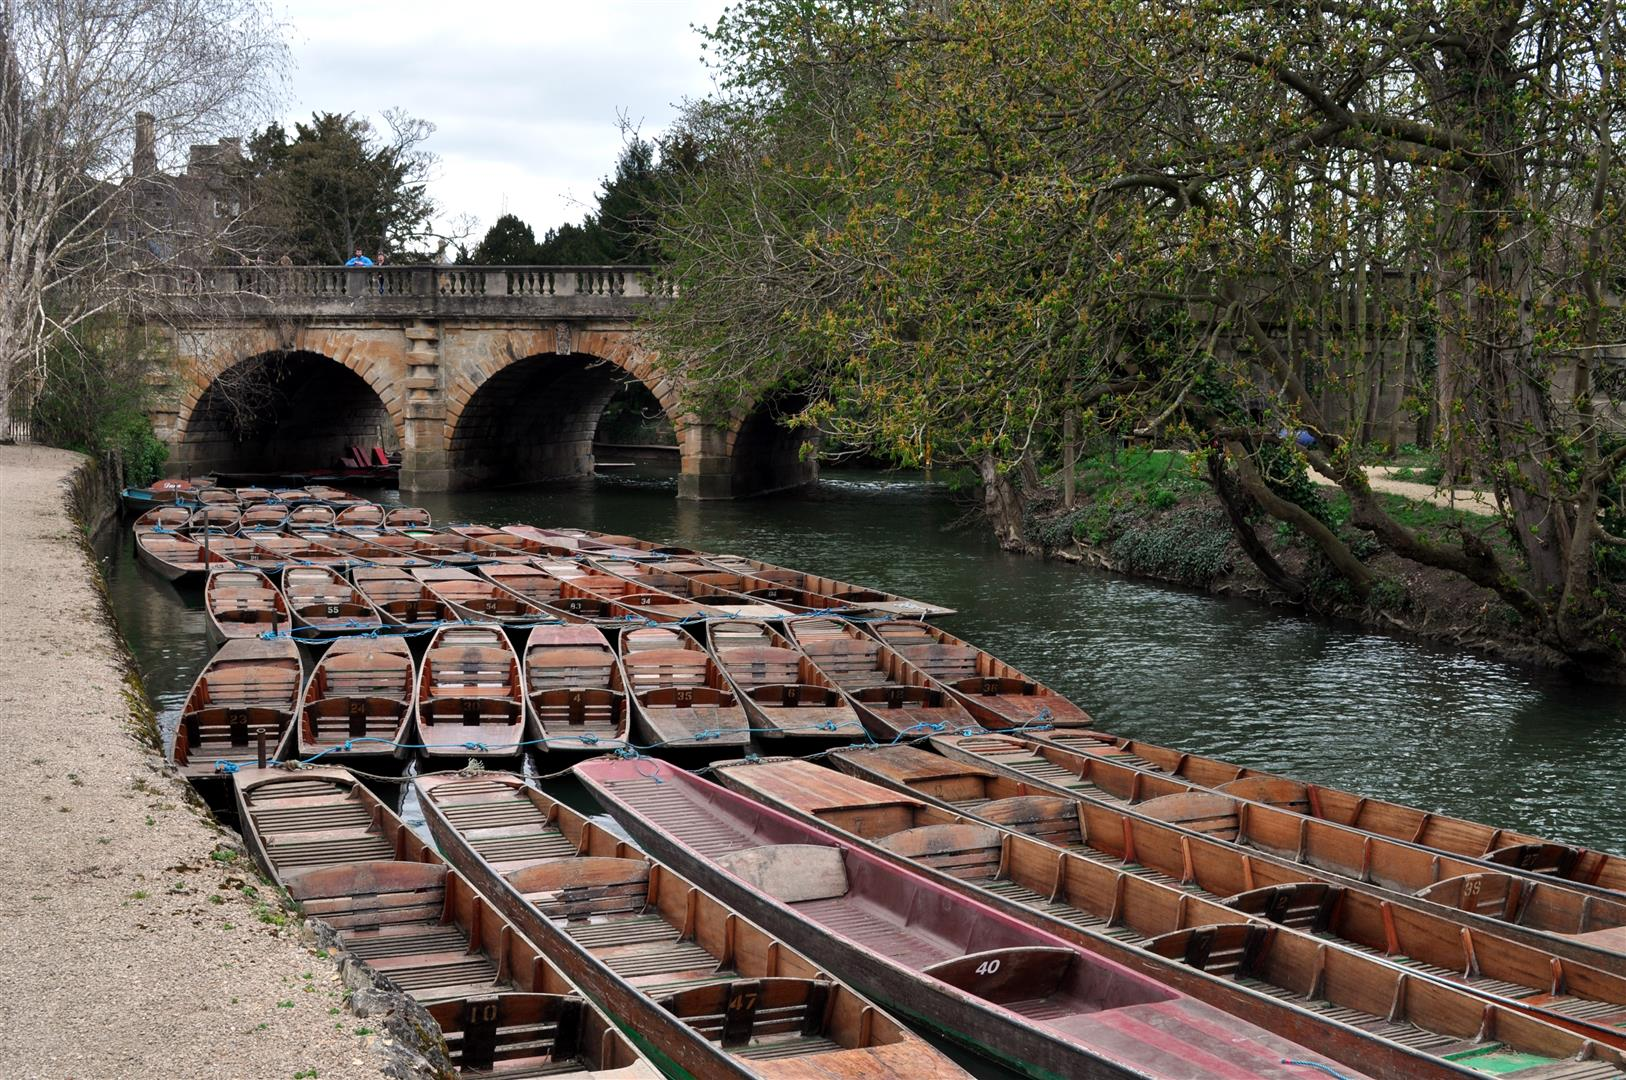 Punts 1, River Cherwell, Oxford